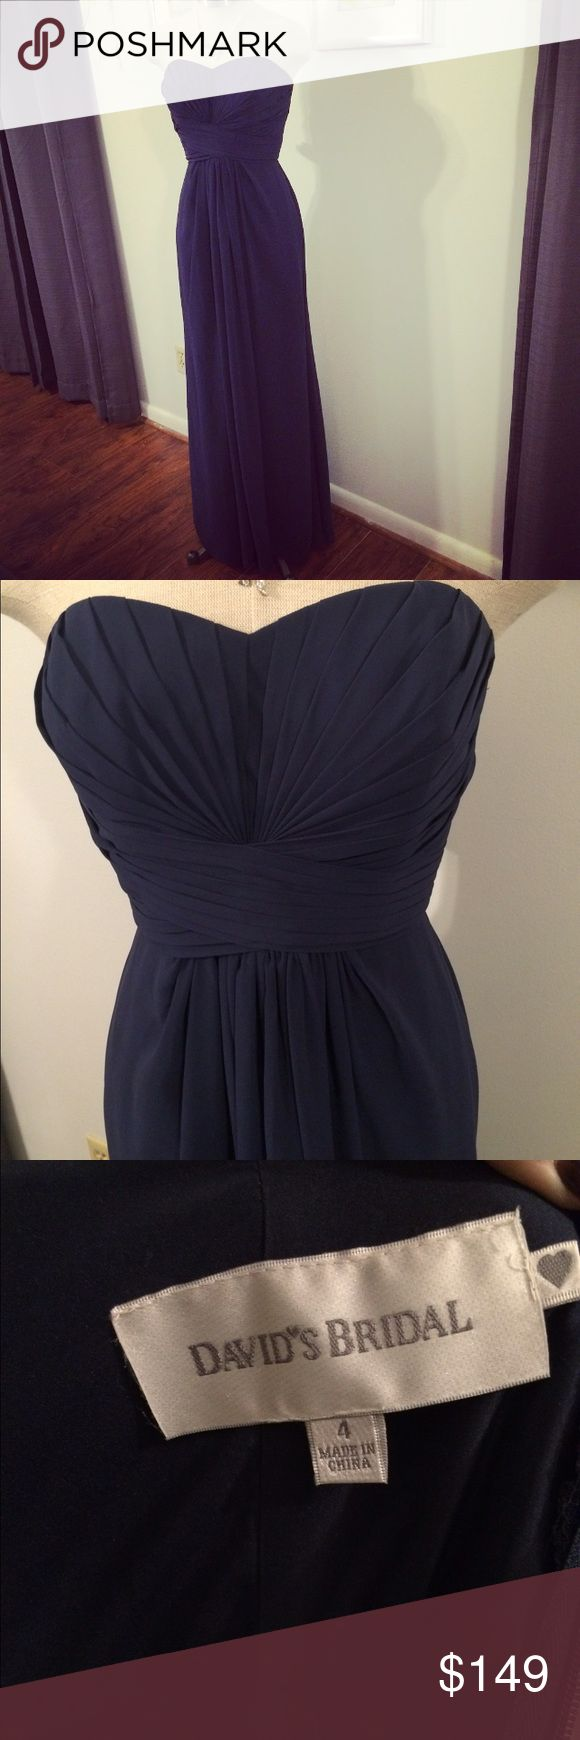 NWT David's Bridal Strapless Navy Dress Brand new navy blue dress from David's bridal size 4 in perfect condition perfect for a wedding, bridesmaid, prom etc davids bridal Dresses Wedding